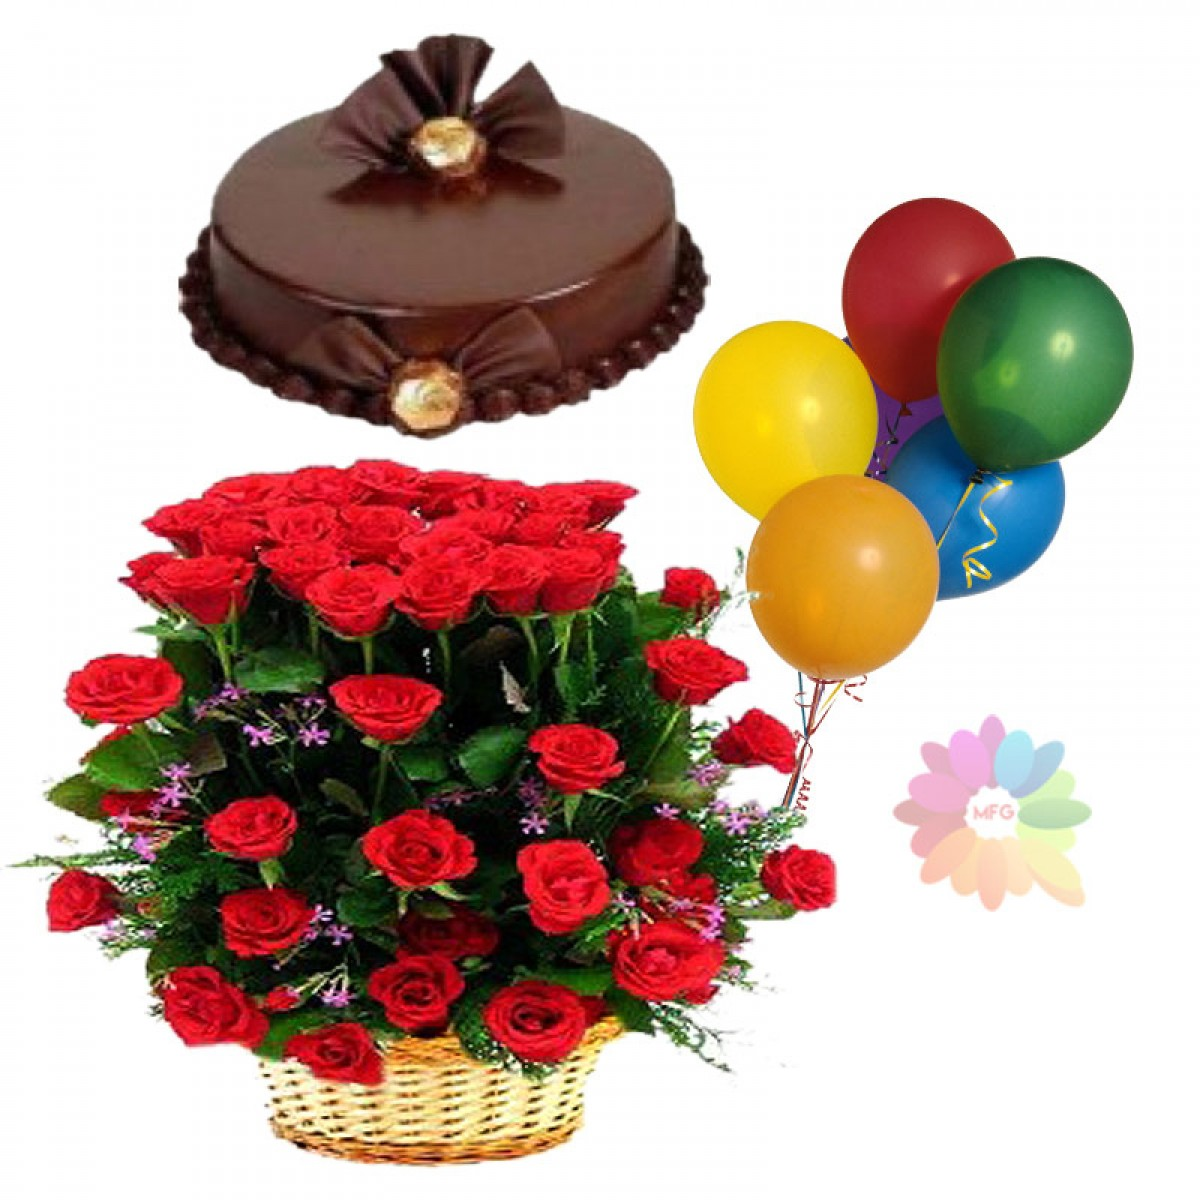 Philippine Flowers Delivery 24 Red Roses Basket Cake And 5